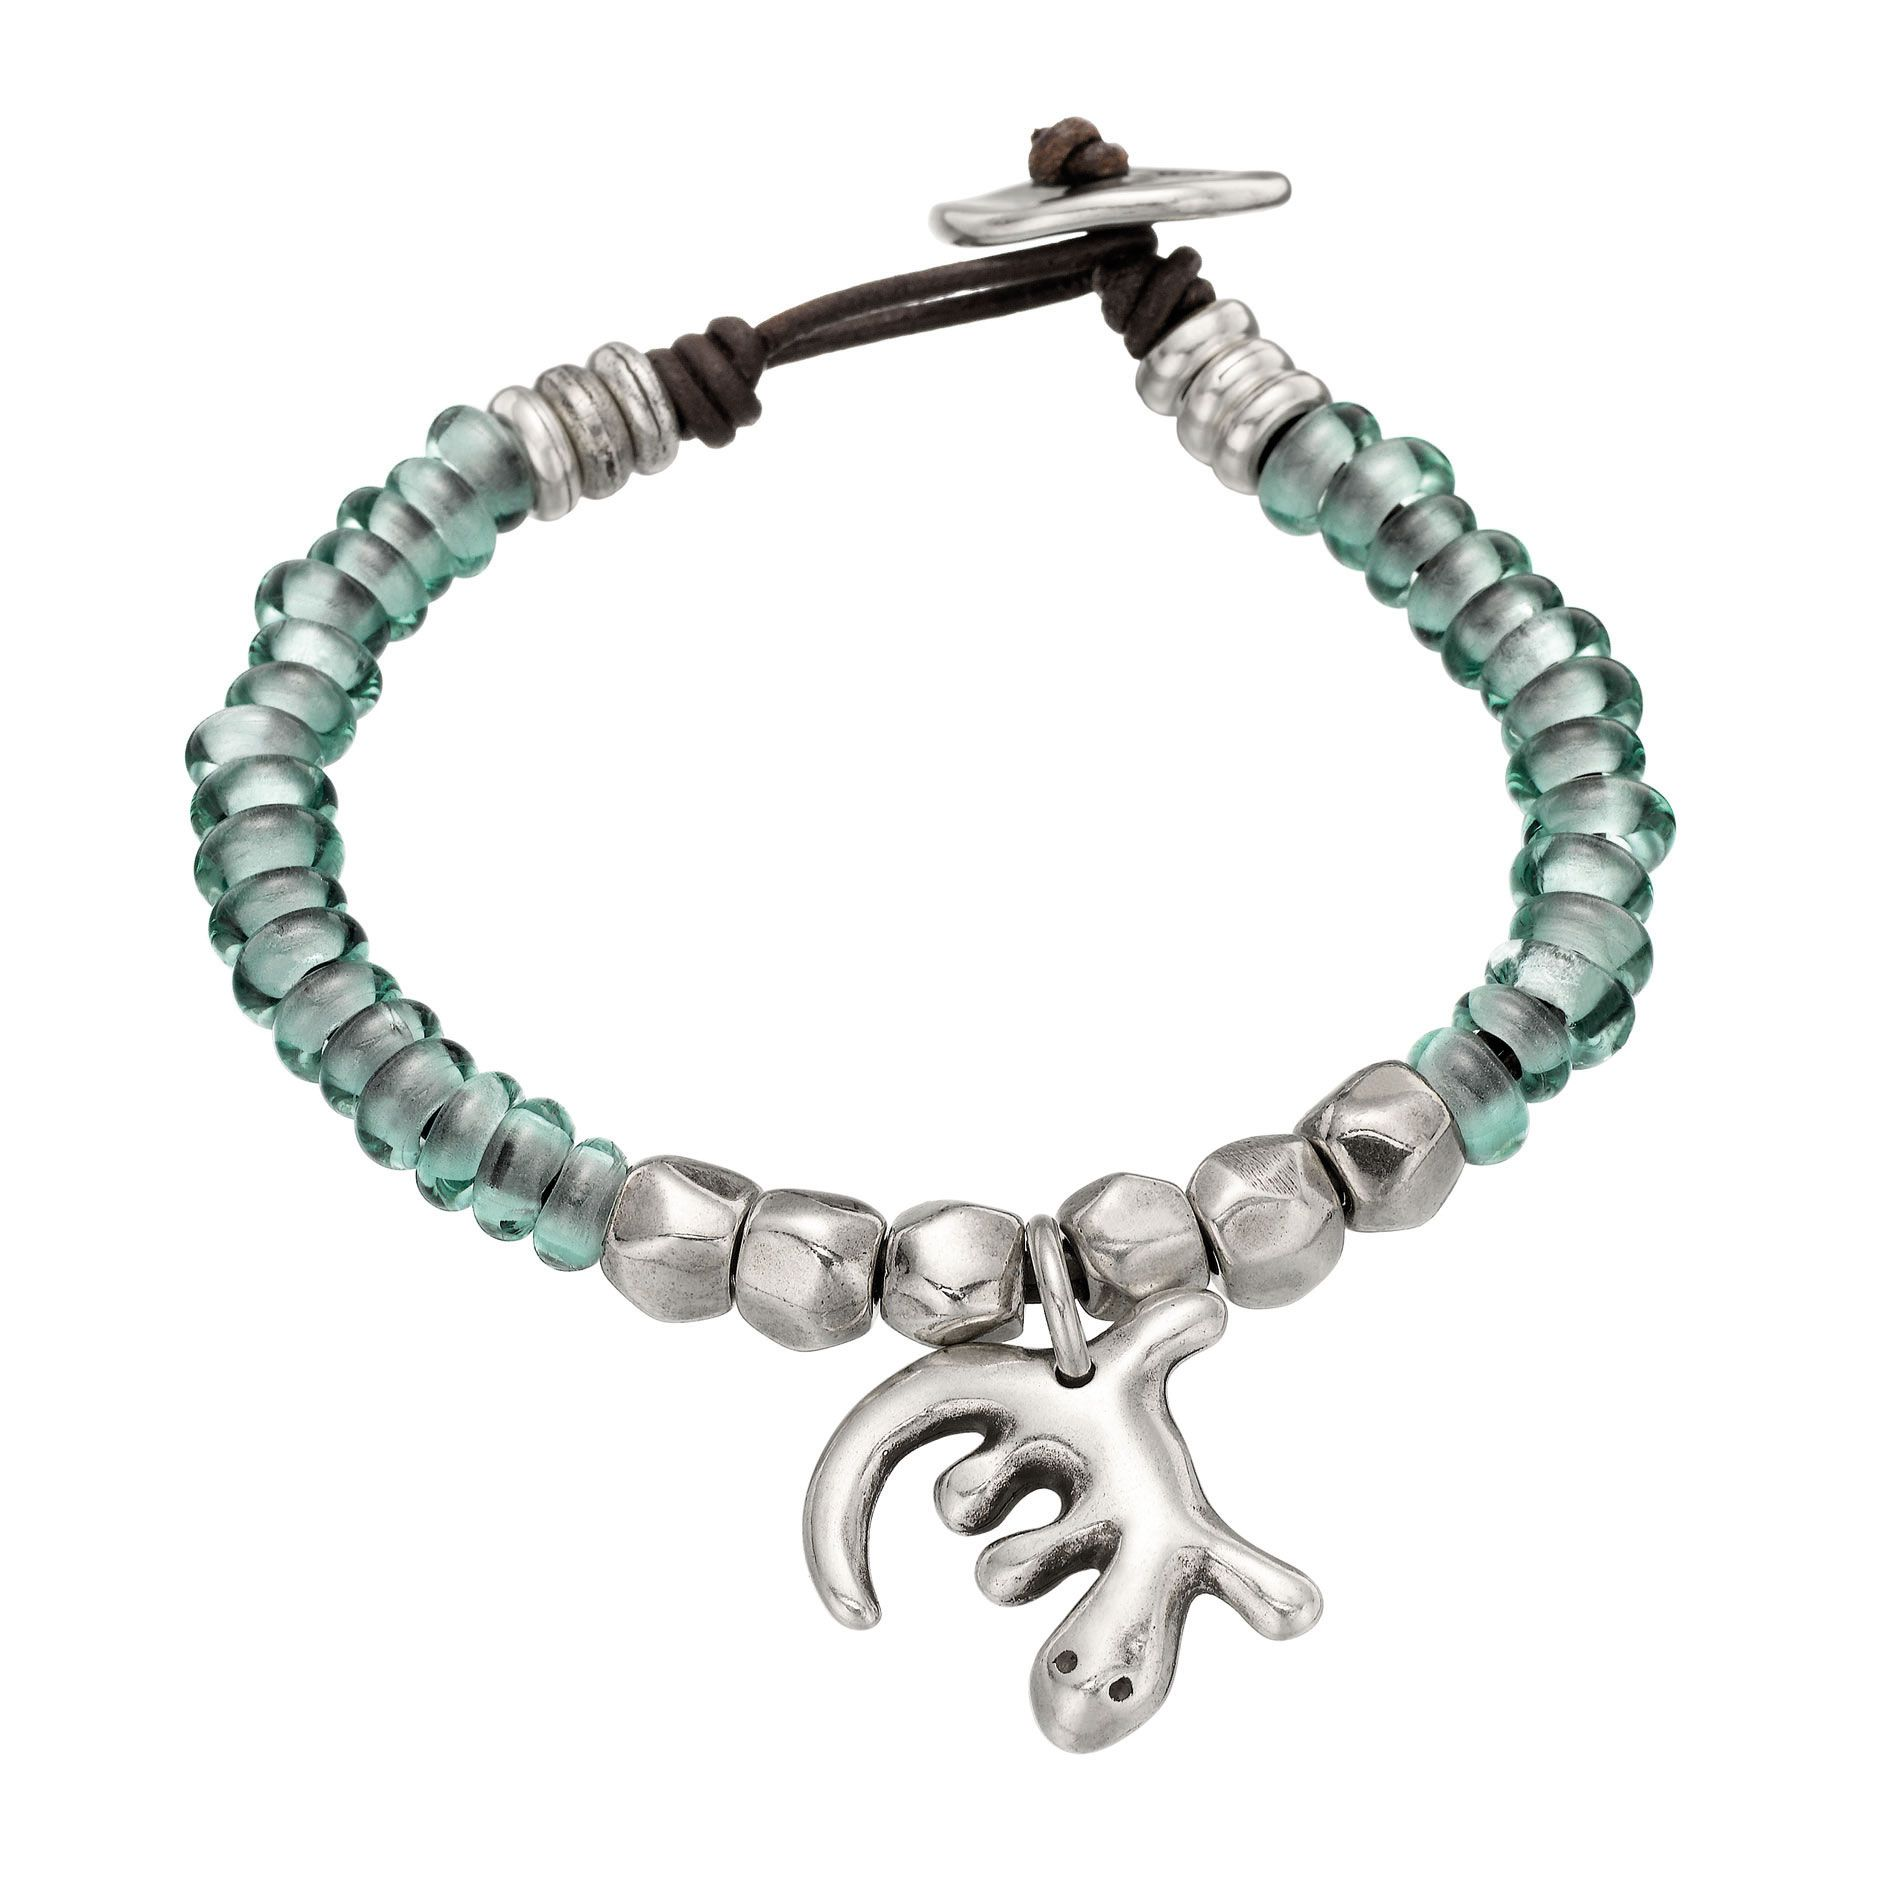 Leather bracelet featuring green glass and silver-plated metal beads, with a lizard charm. Beret-shaped clasp. With the uniquely unmistakable style of UNOde50, 100% handcrafted and made in Spain.